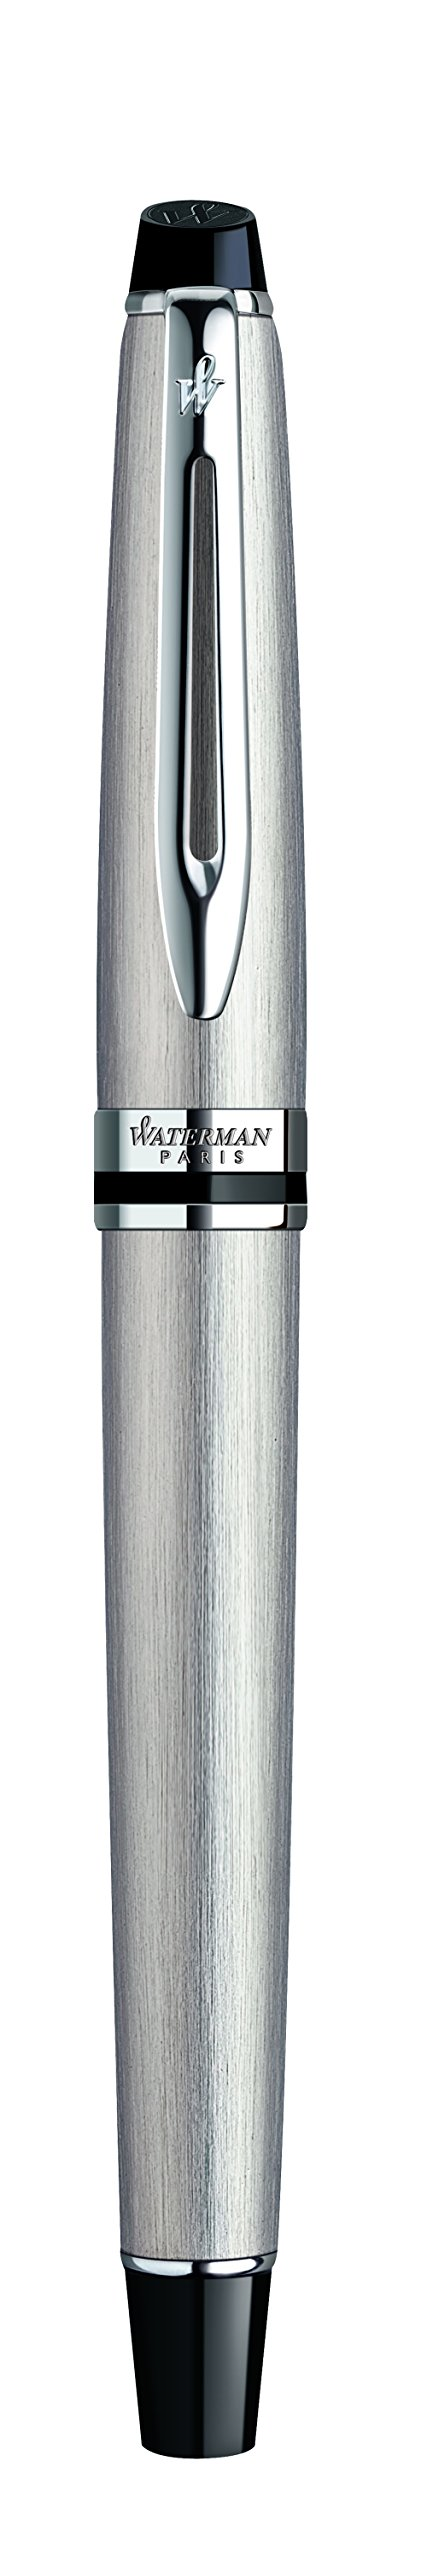 Waterman Expert Deluxe Rollerball Pen with Fine Black refill by Waterman (Image #6)